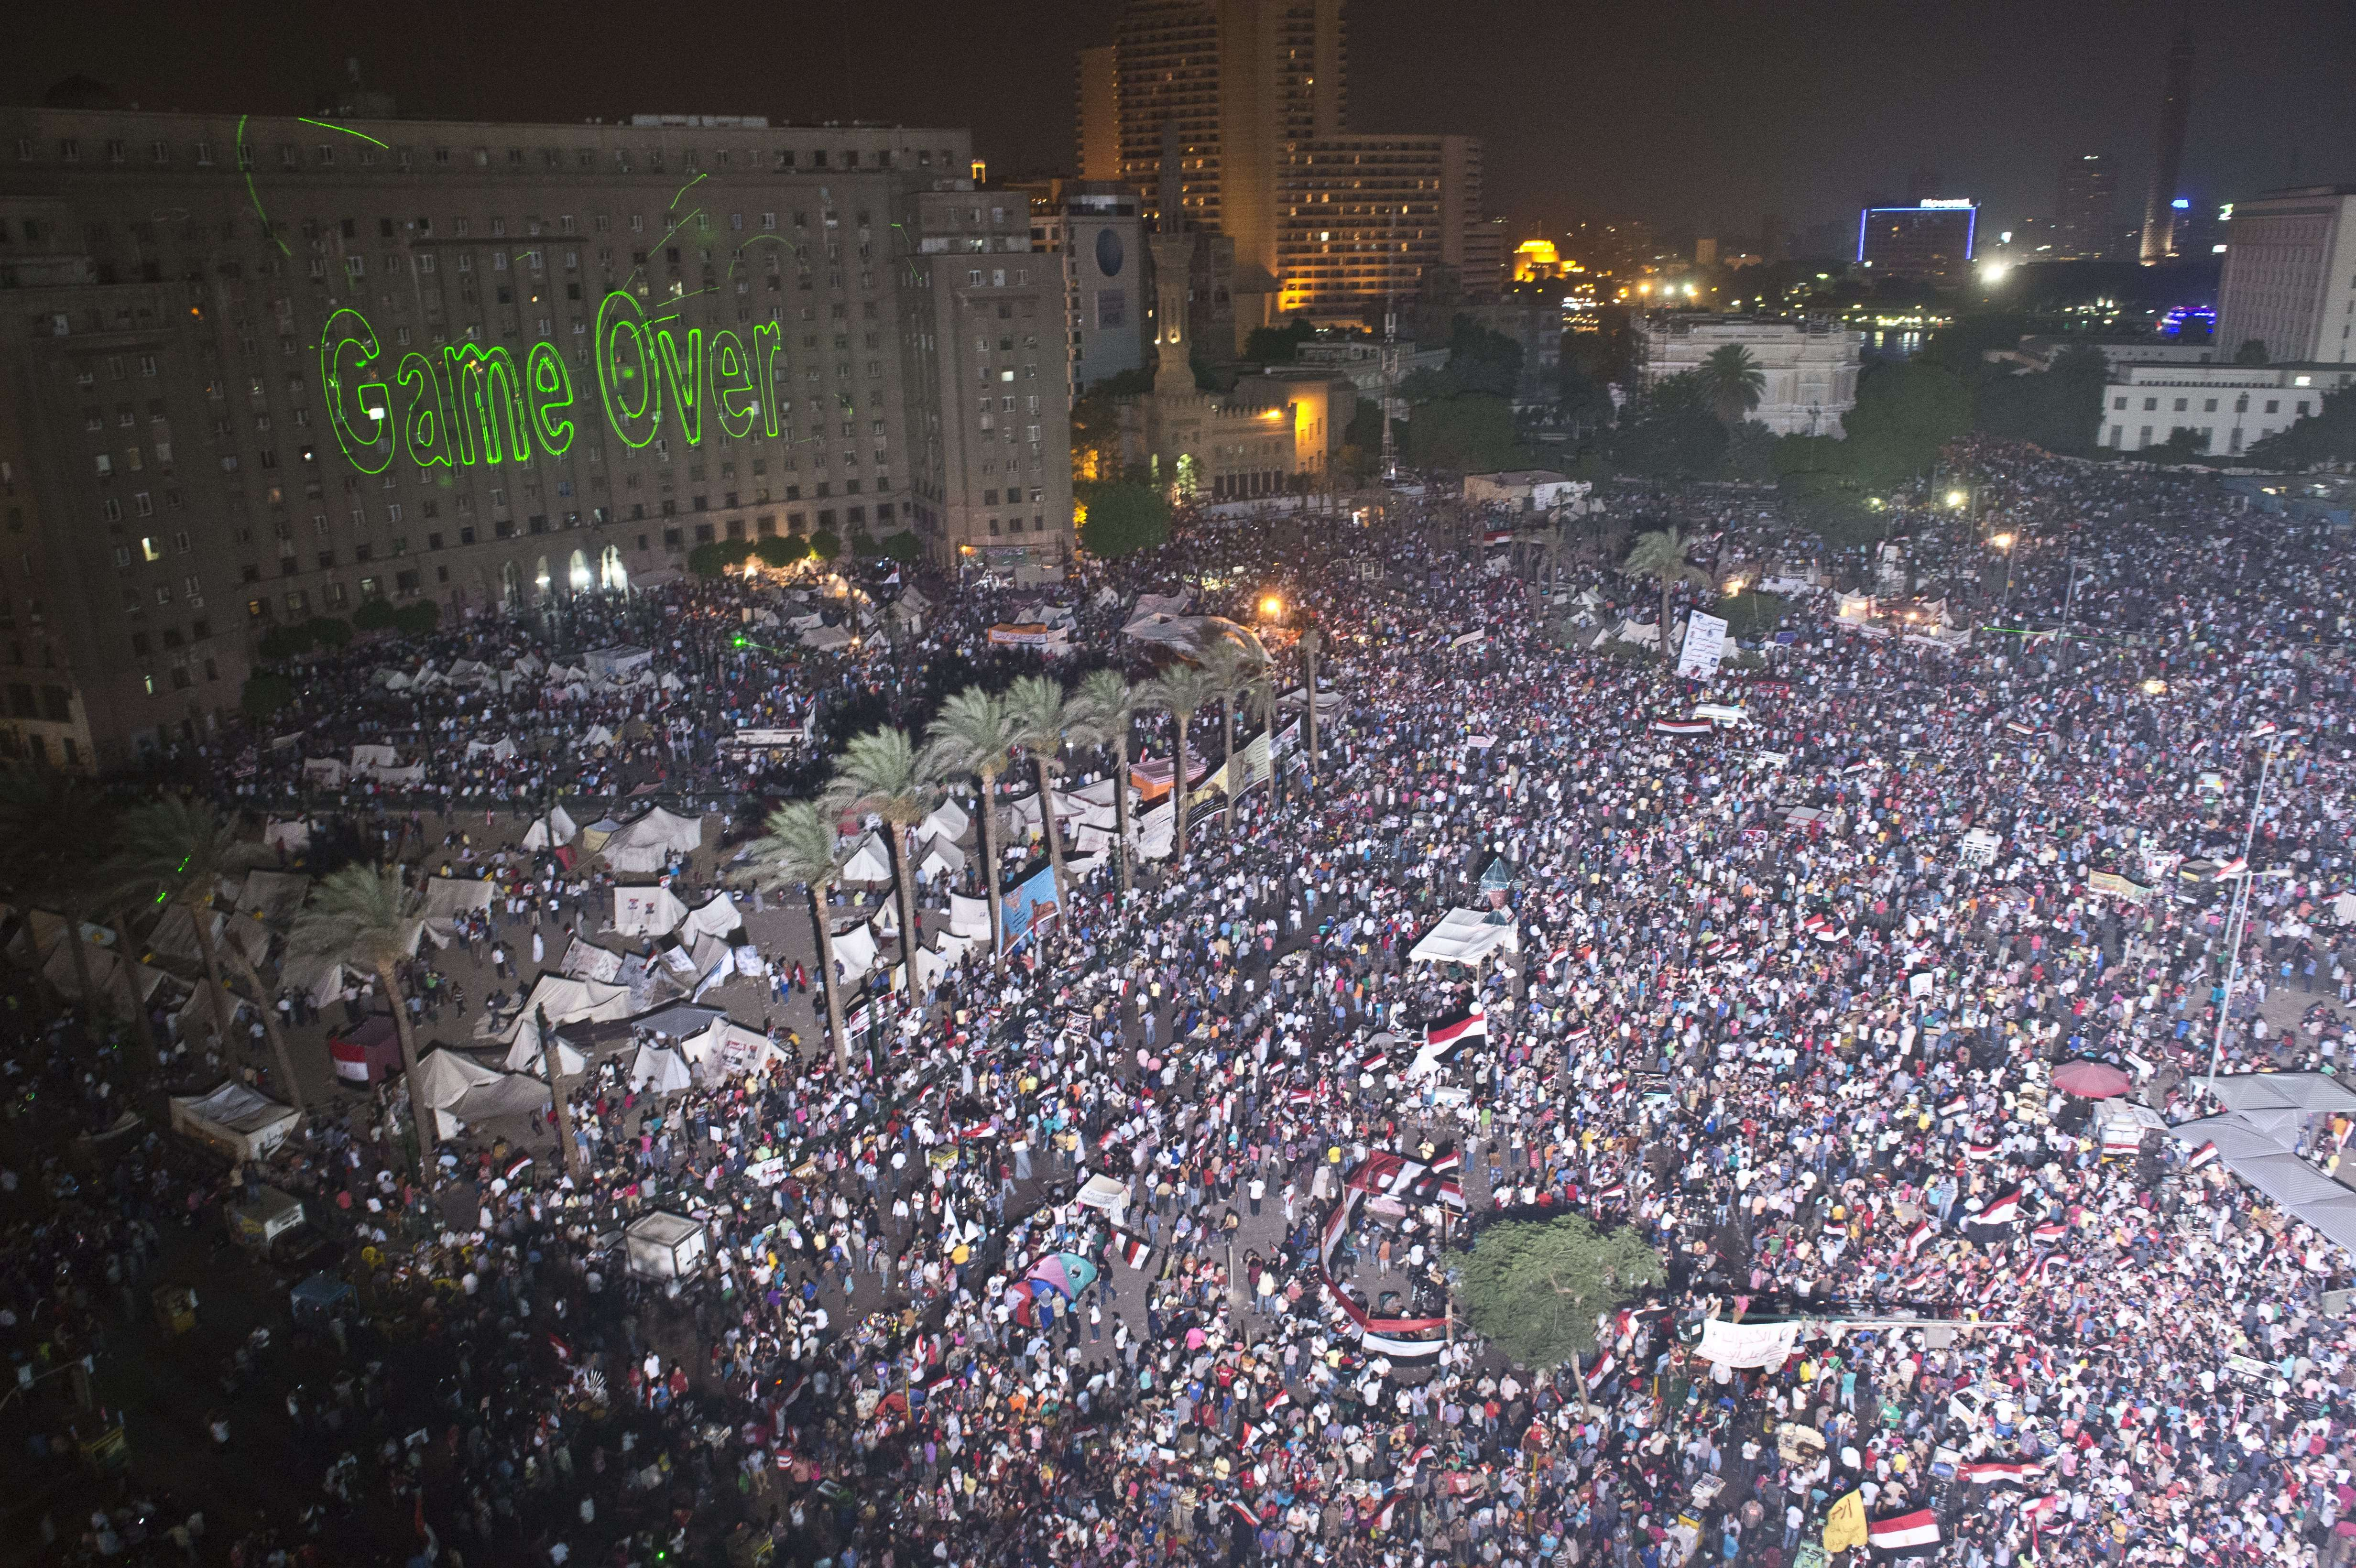 Gallery: Egypt divided as Mohammed Morsi protests continue in Cairo